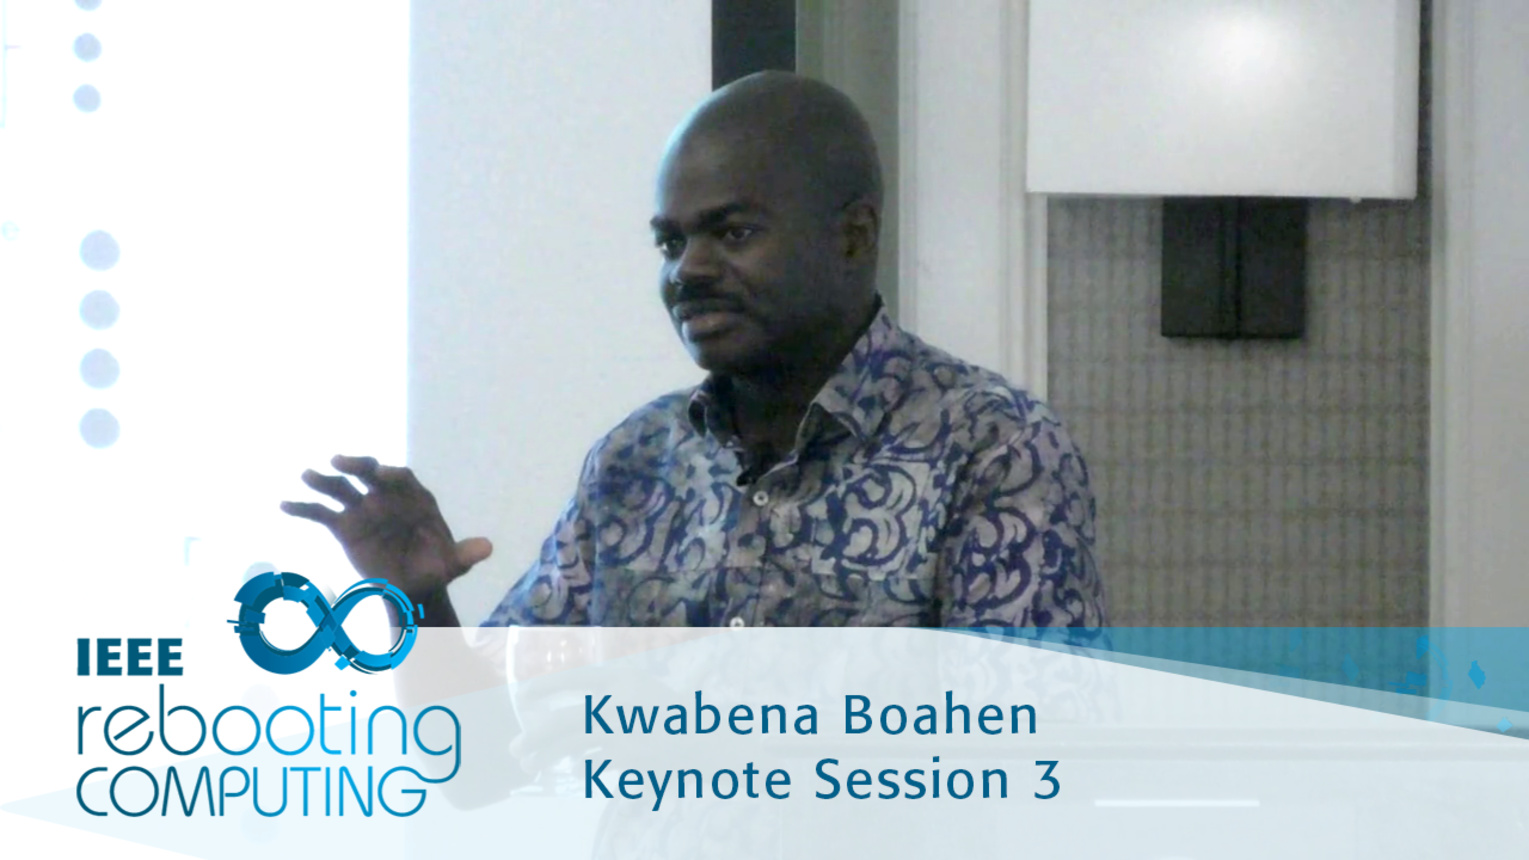 Neuromorphic Chips - Kwabena Boahen: 2016 International Conference on Rebooting Computing